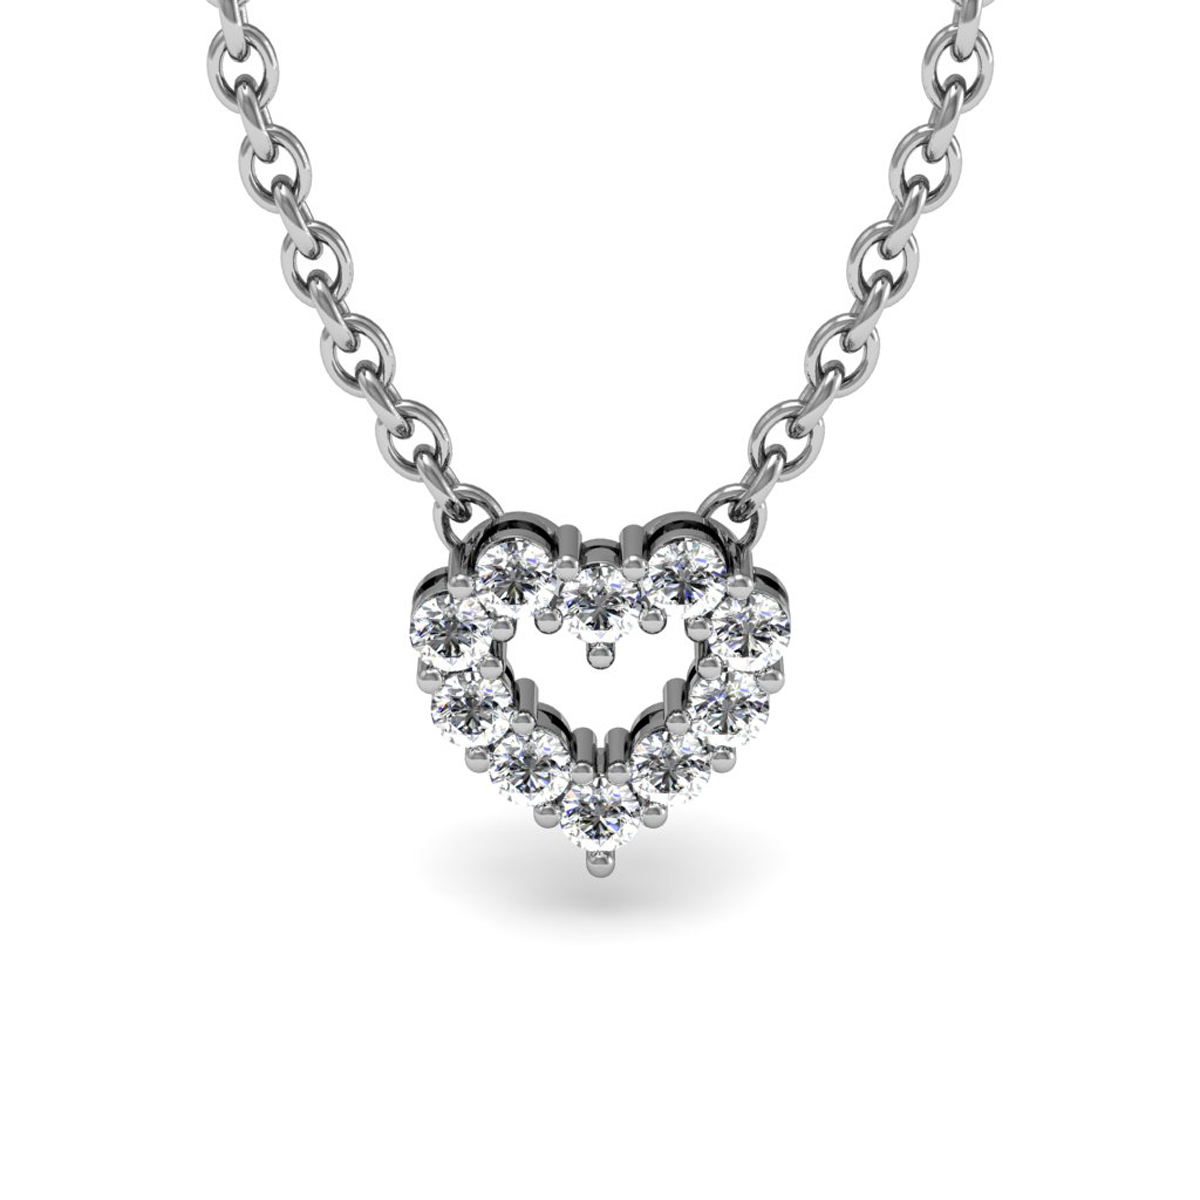 1 3 Carat Diamond Heart Necklace in Sterling Silver